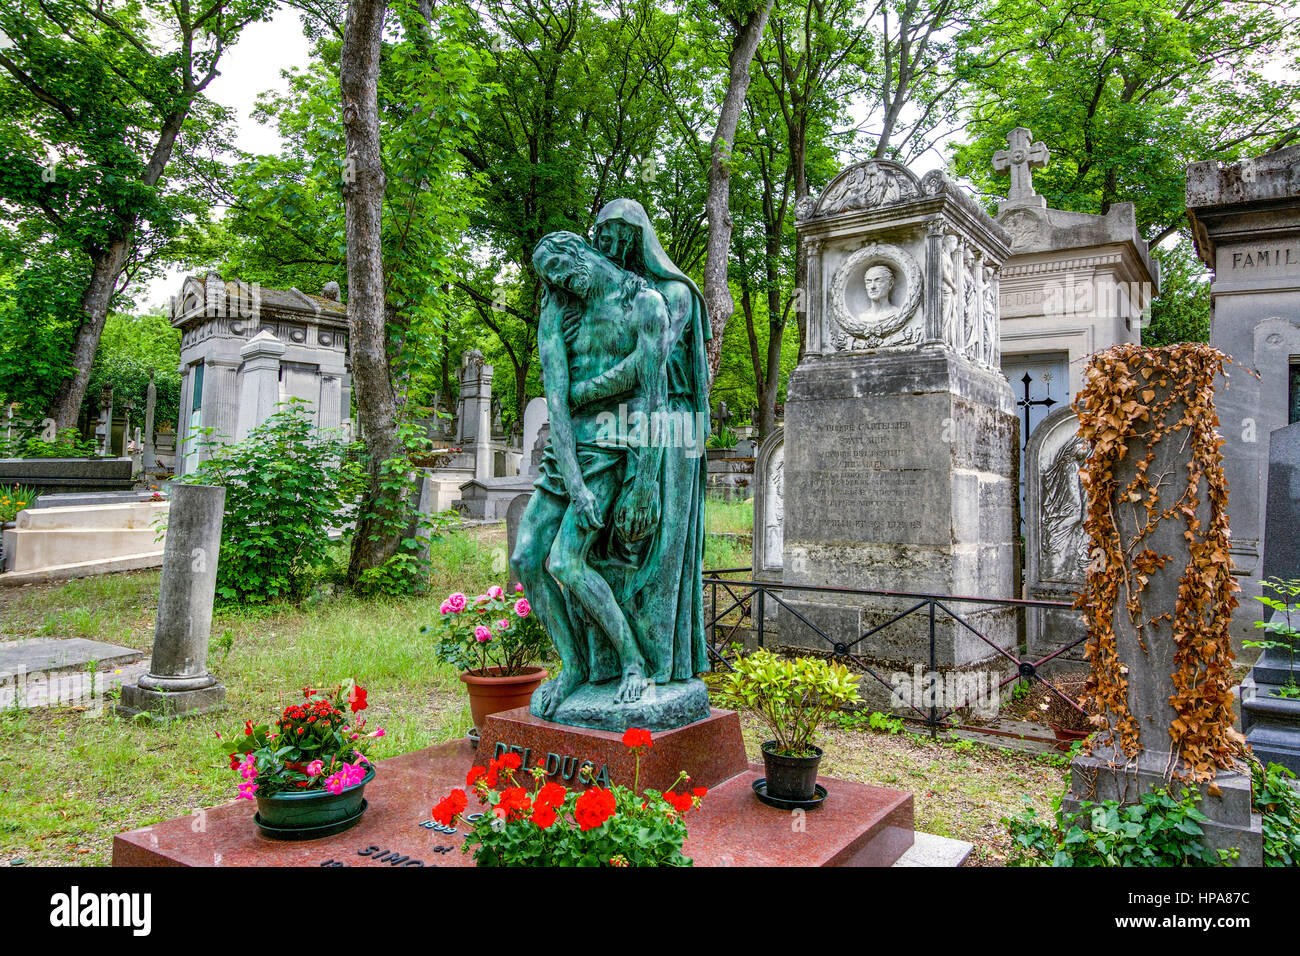 Tombs in the Pere Lachaise cemetery, Paris, France, F Chopin - Stock Image